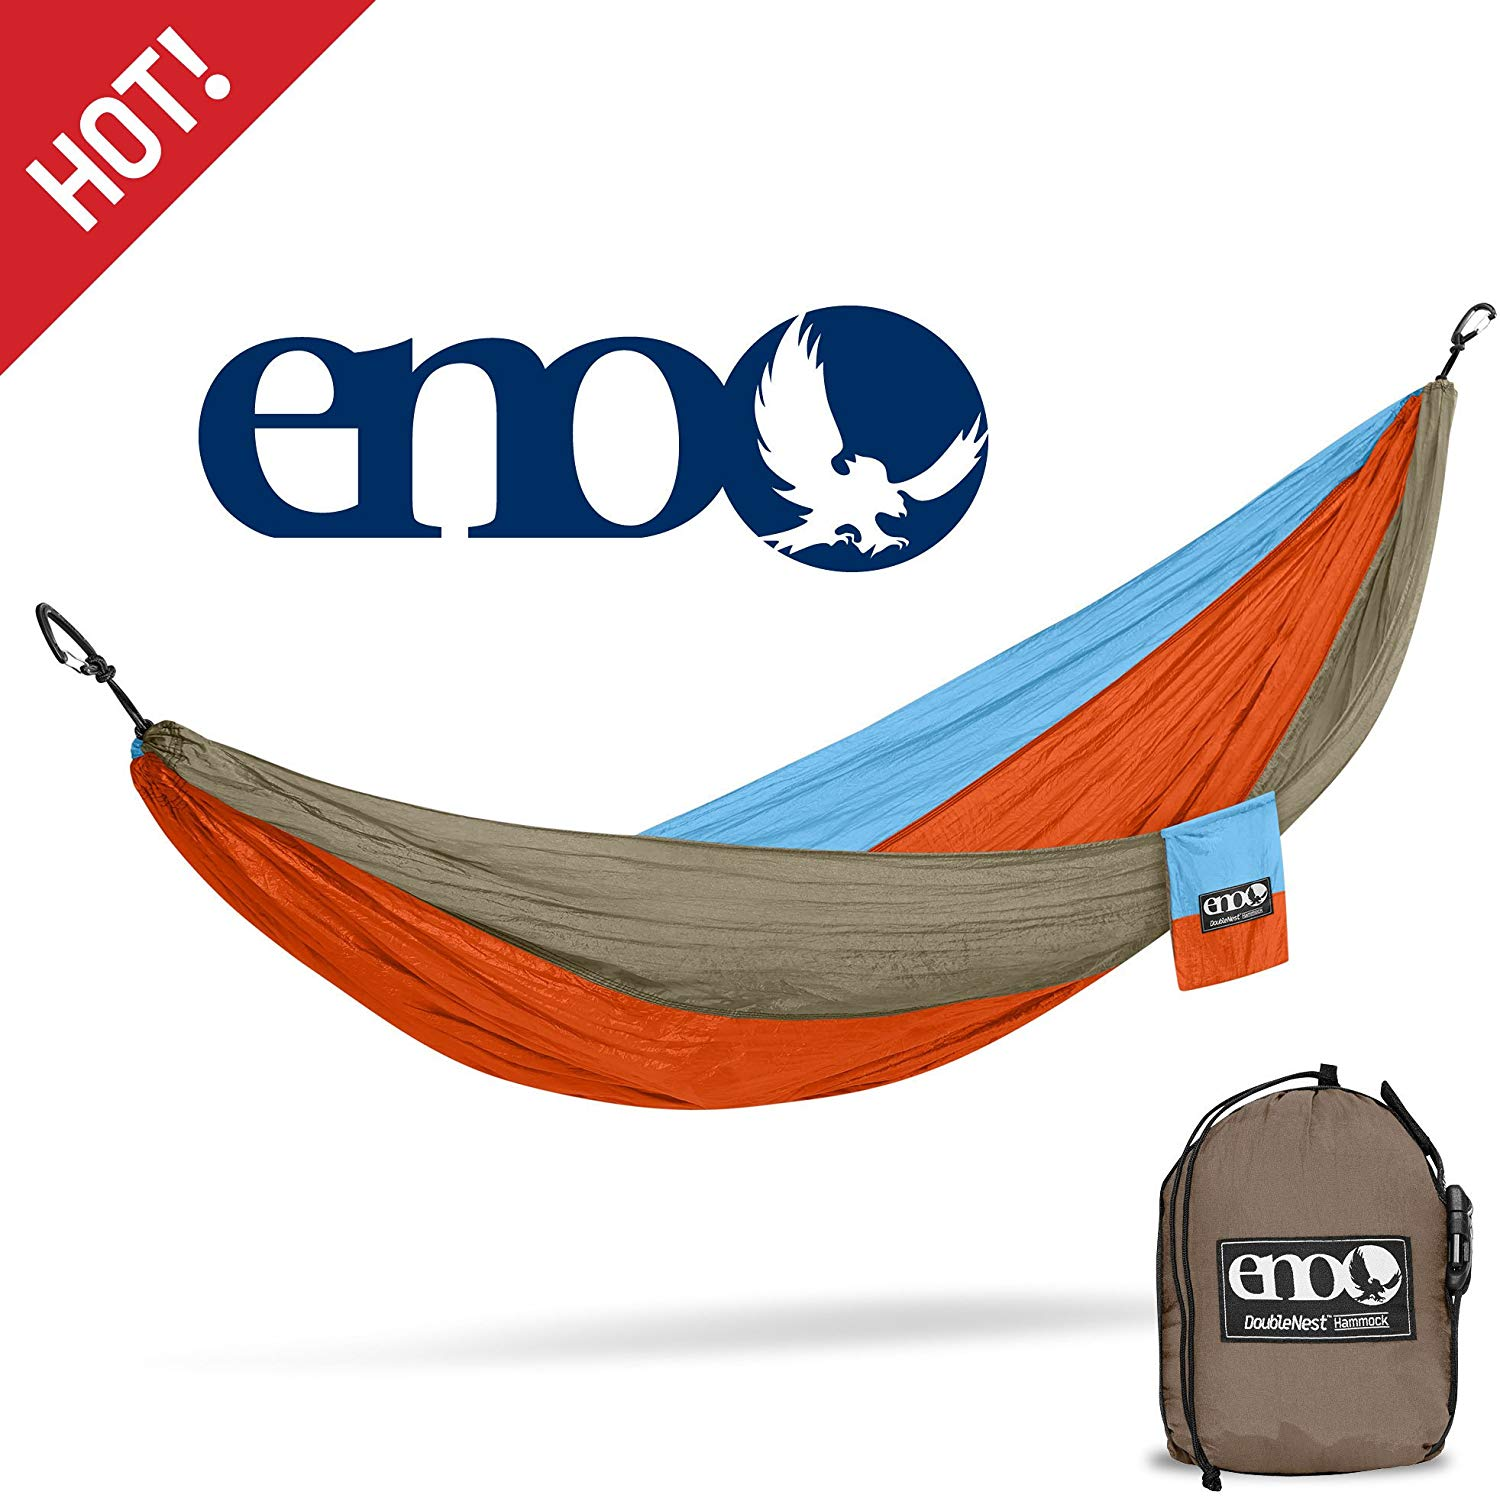 Eagles Nest Outfitters DoubleNest Hammock, Portable Hammock for Two for Outdoor Camping, $69 @amazon.com